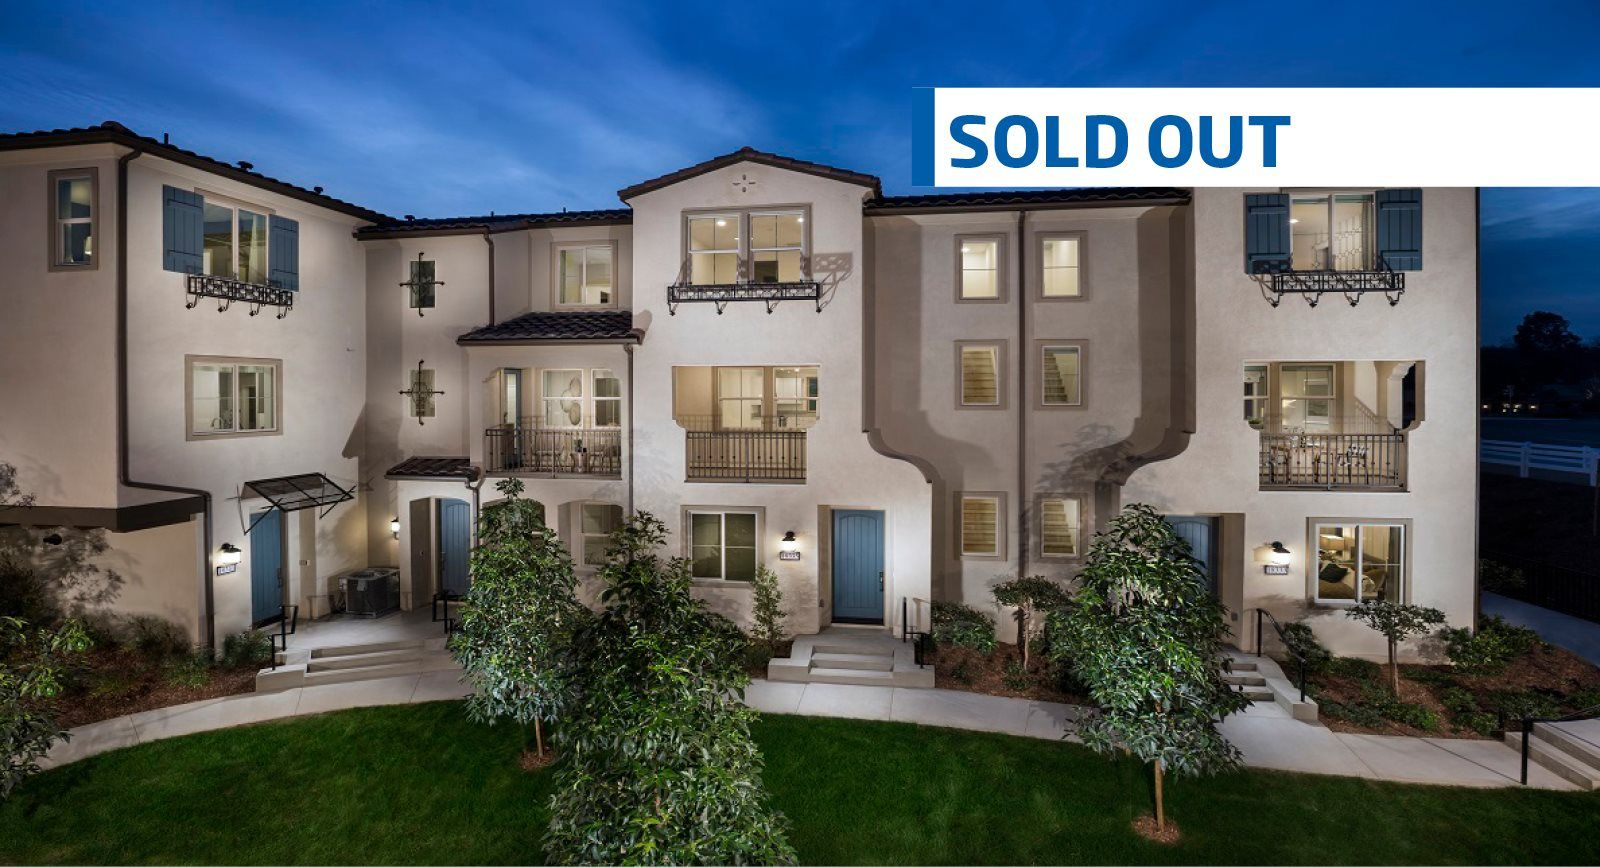 Residence Two Sold Out